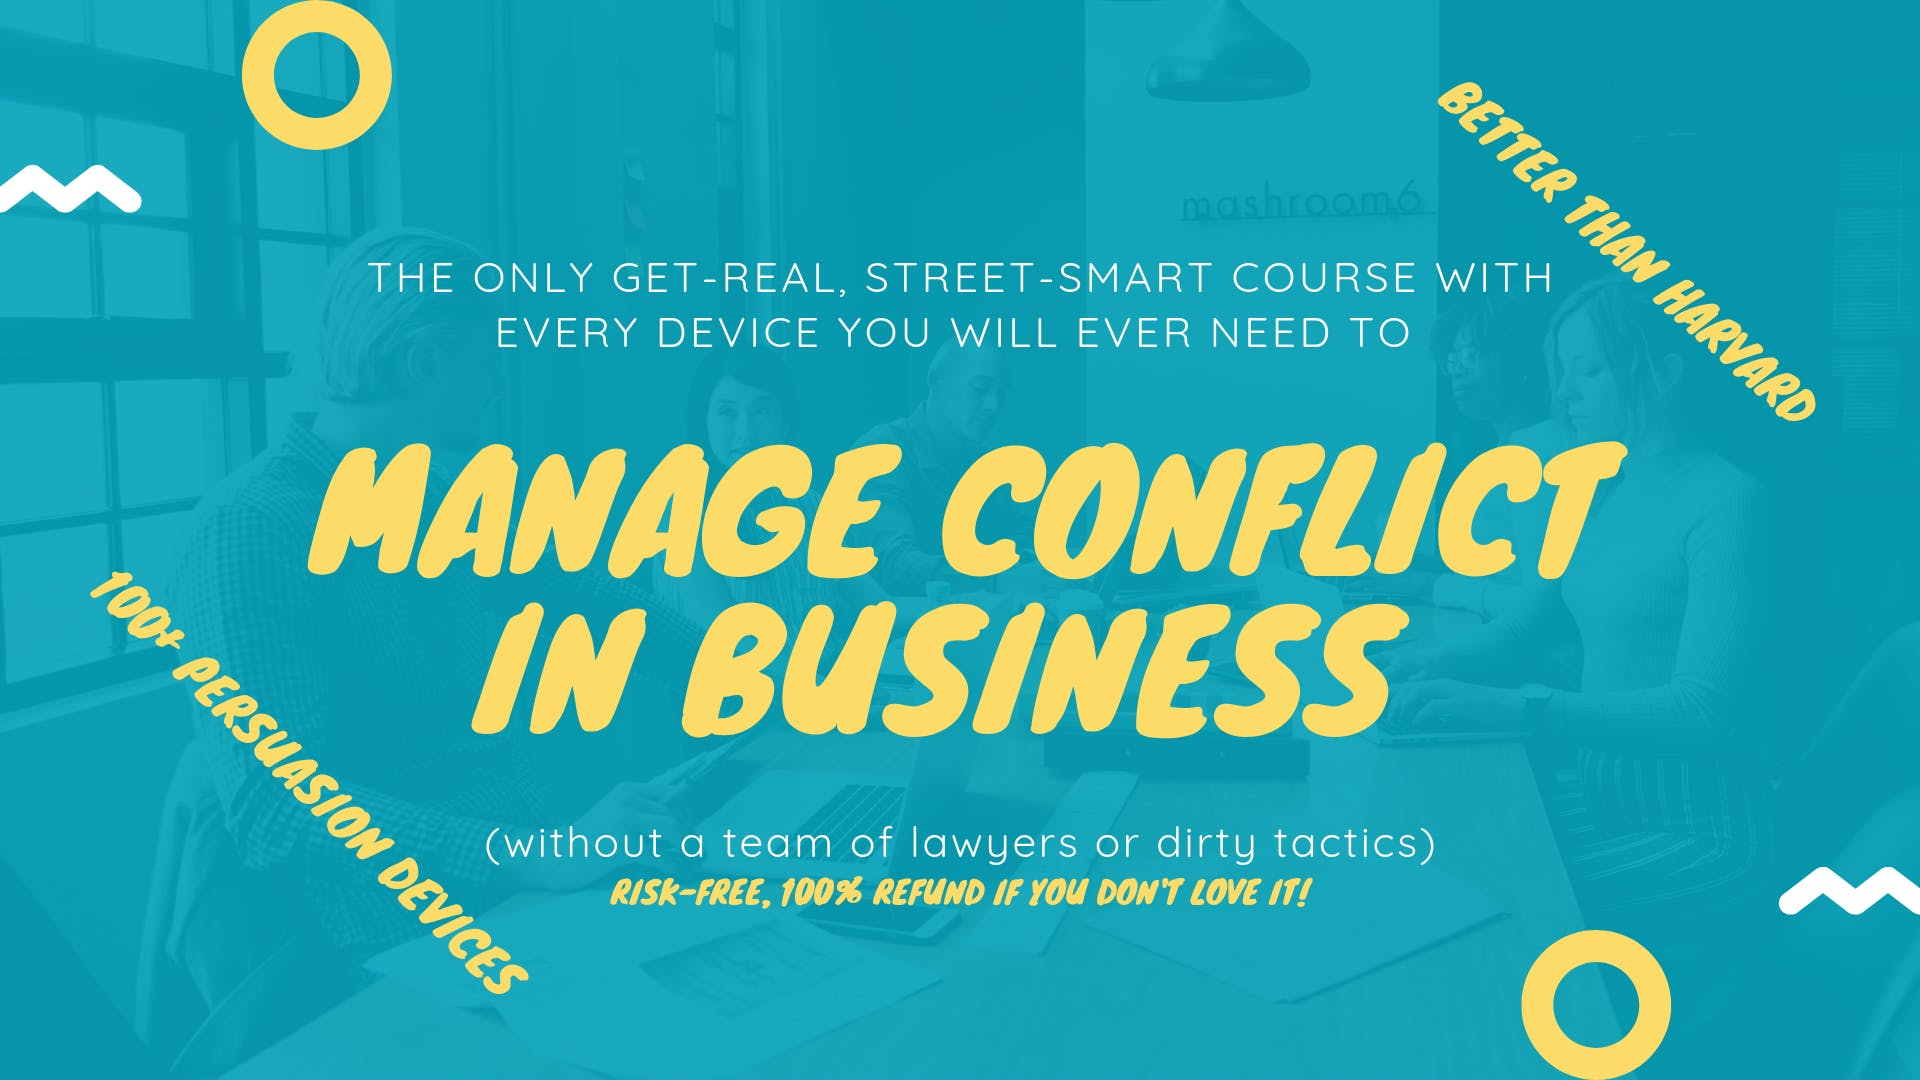 The ONLY Get-Real, Street-Smart Course to Manage Disputes: Boston (1-2 Feb 2020)